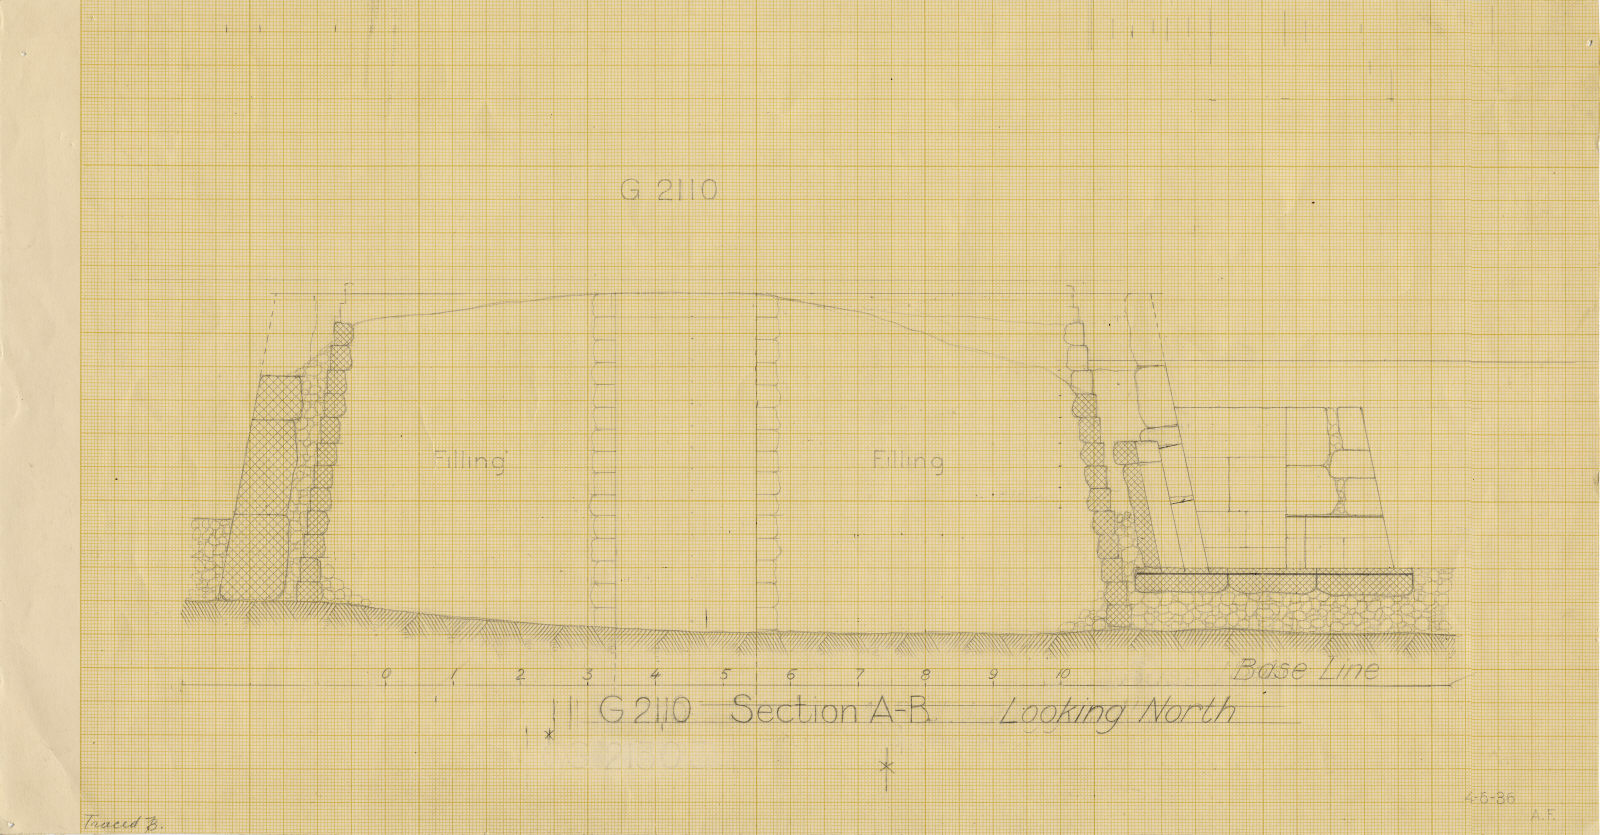 Maps and plans: Section of G 2110